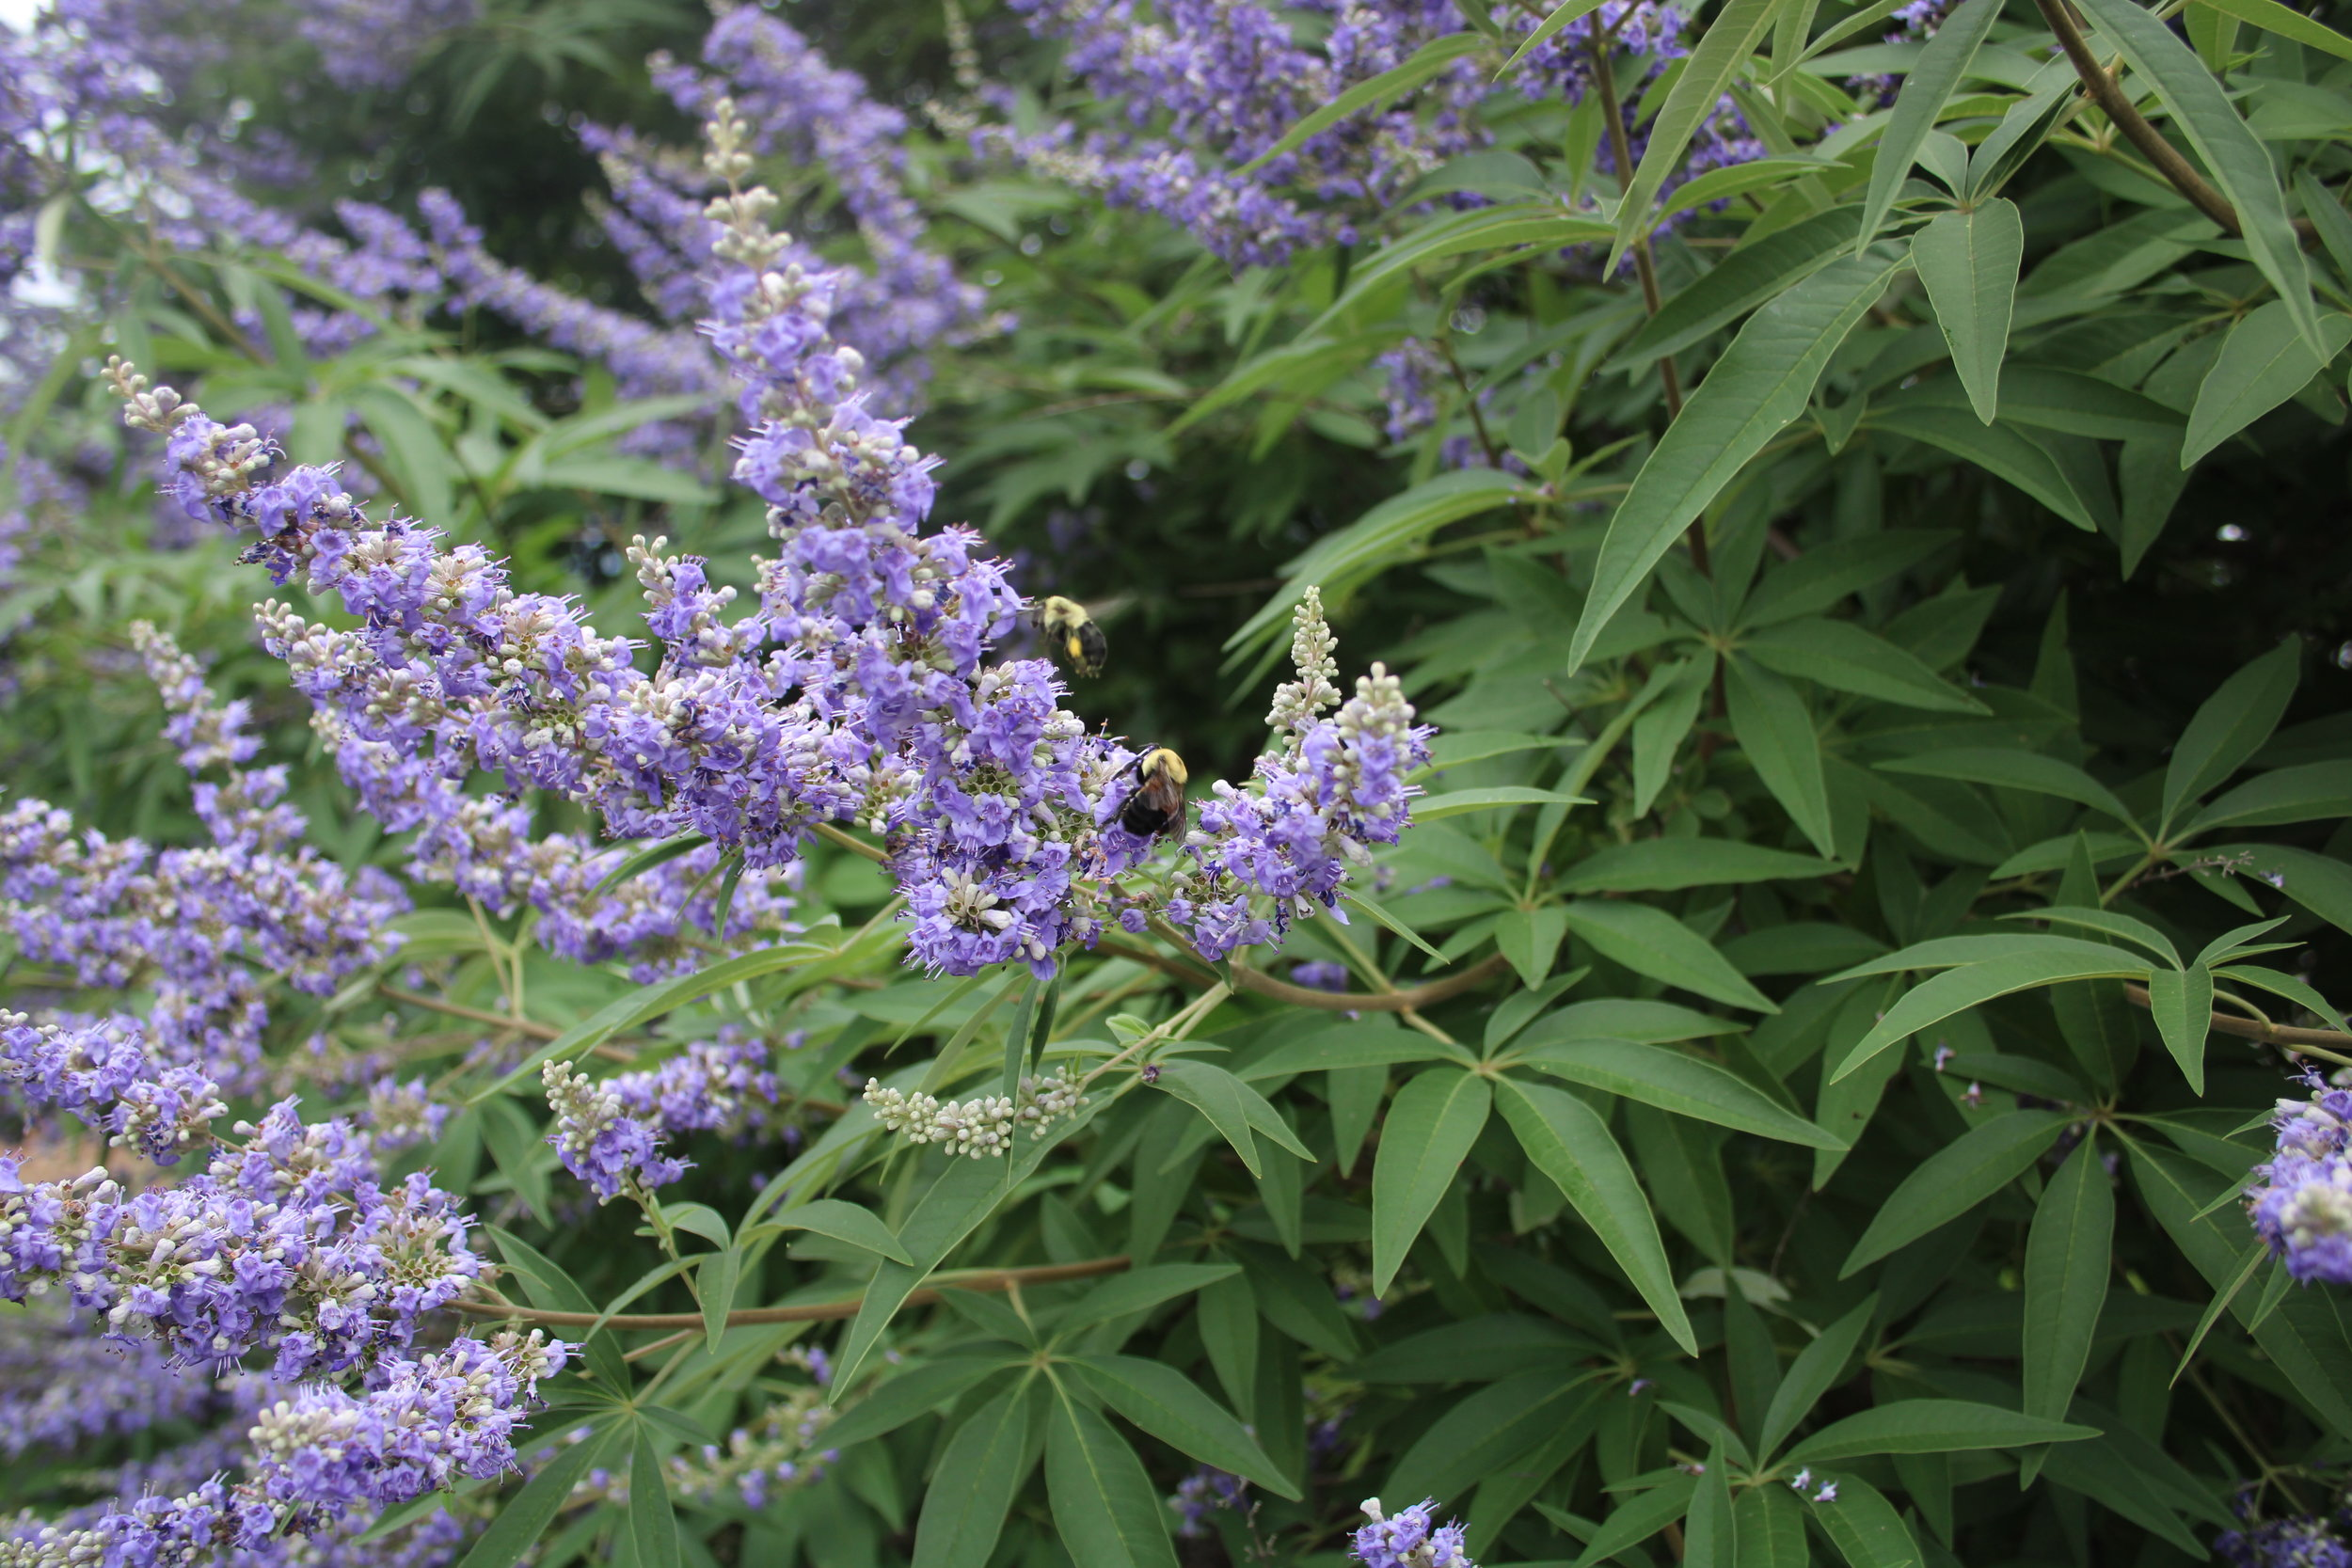 Bumblebees buzzing around the blooms of  Vitex angus-caste.